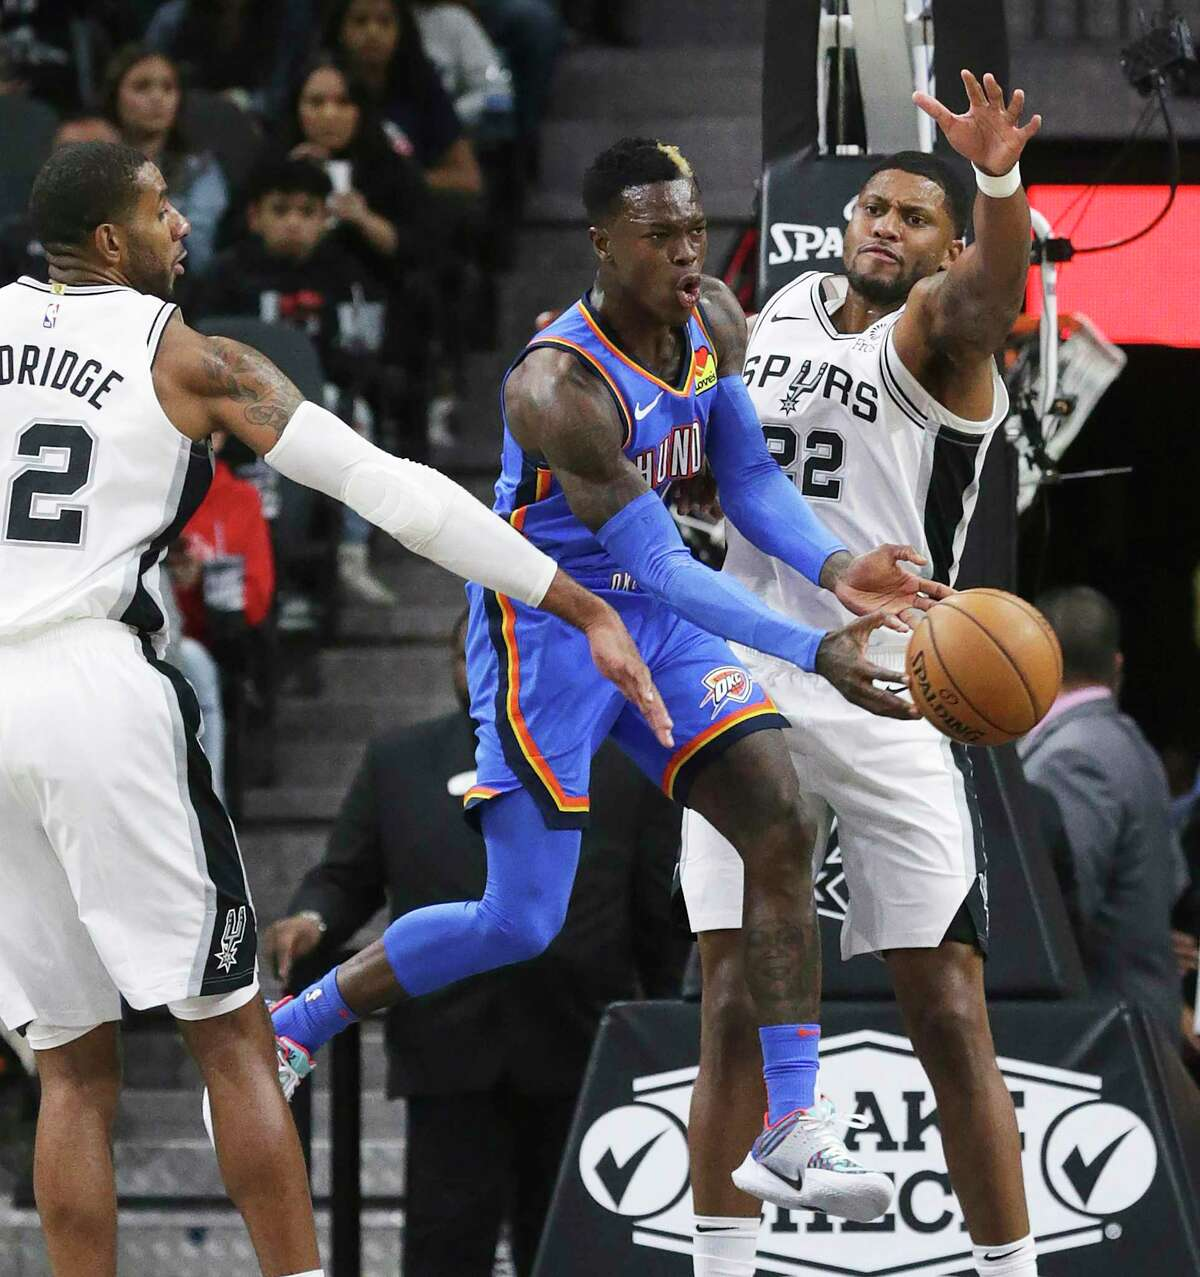 Dennis Schroder passes the ball out from under LaMarcus Aldridge and Rudy Gay as the Spurs hosts the Thunder at the AT&T Center on Nov. 7, 2019.